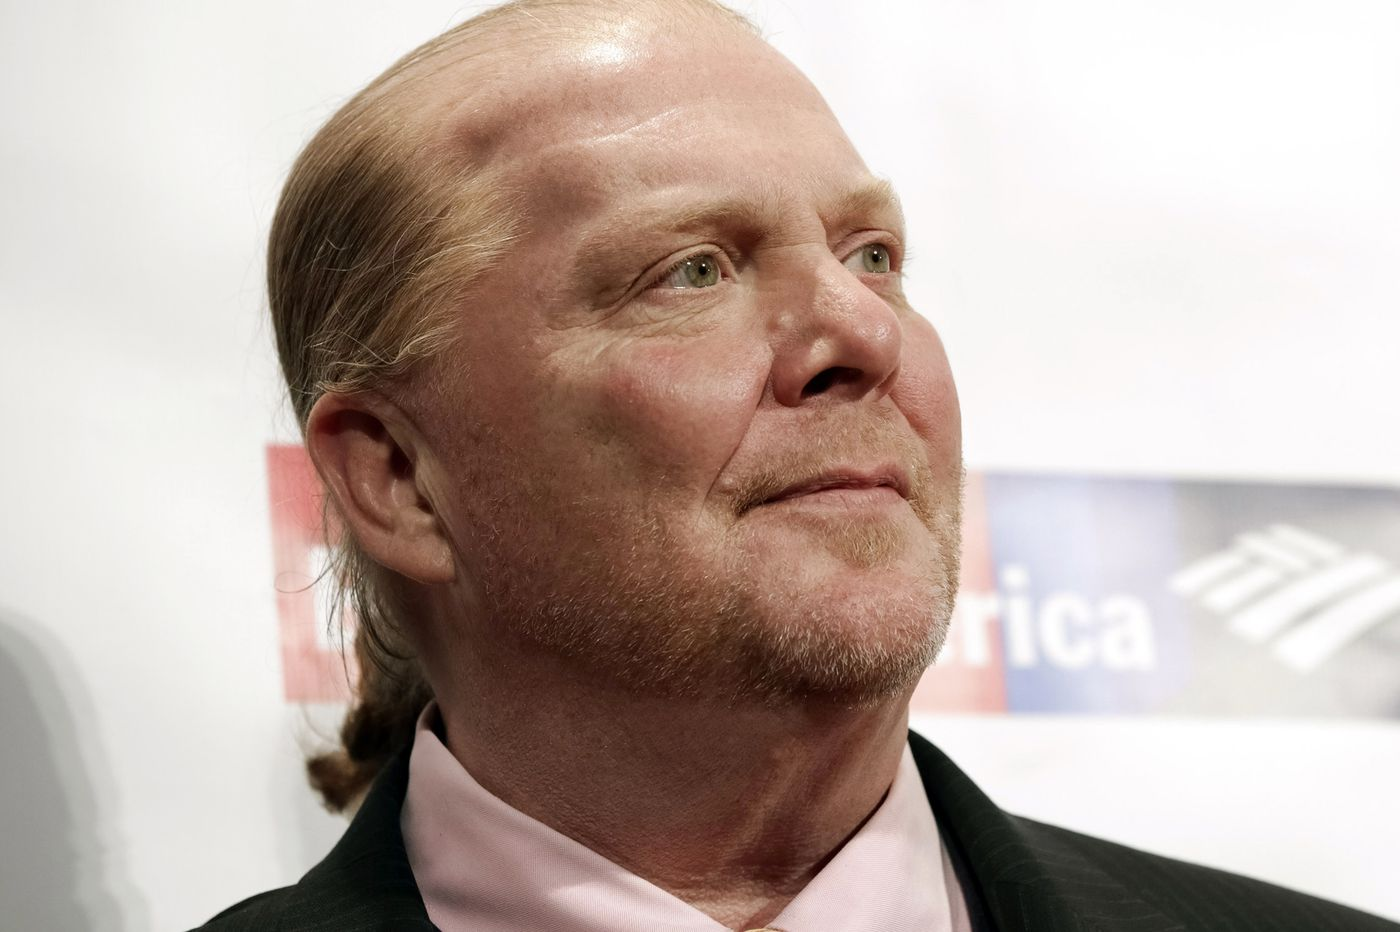 Mario Batali reportedly facing assault charges in Boston